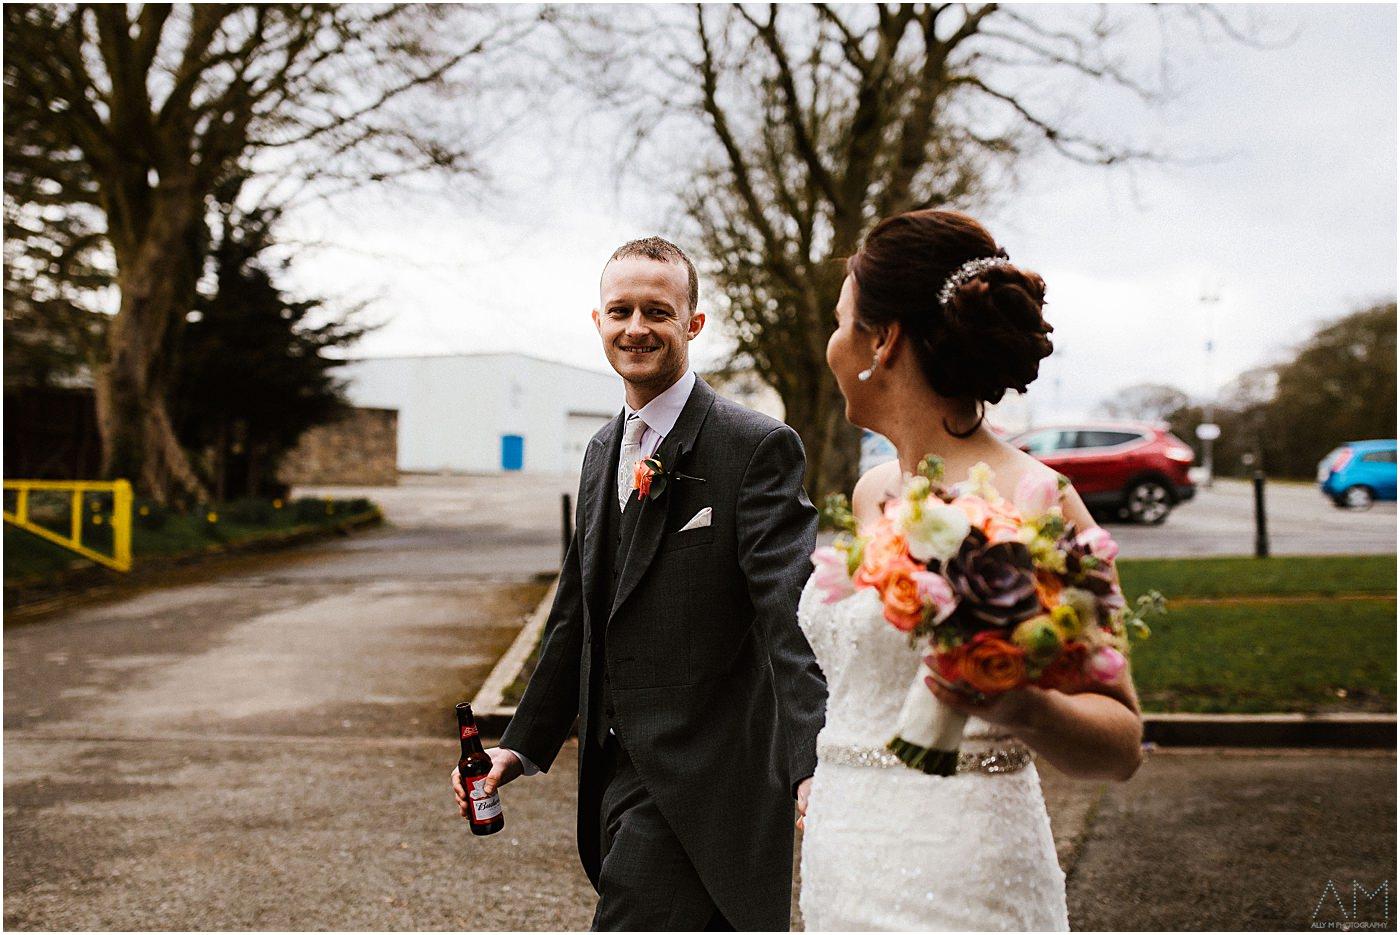 Groom smiling at his wife